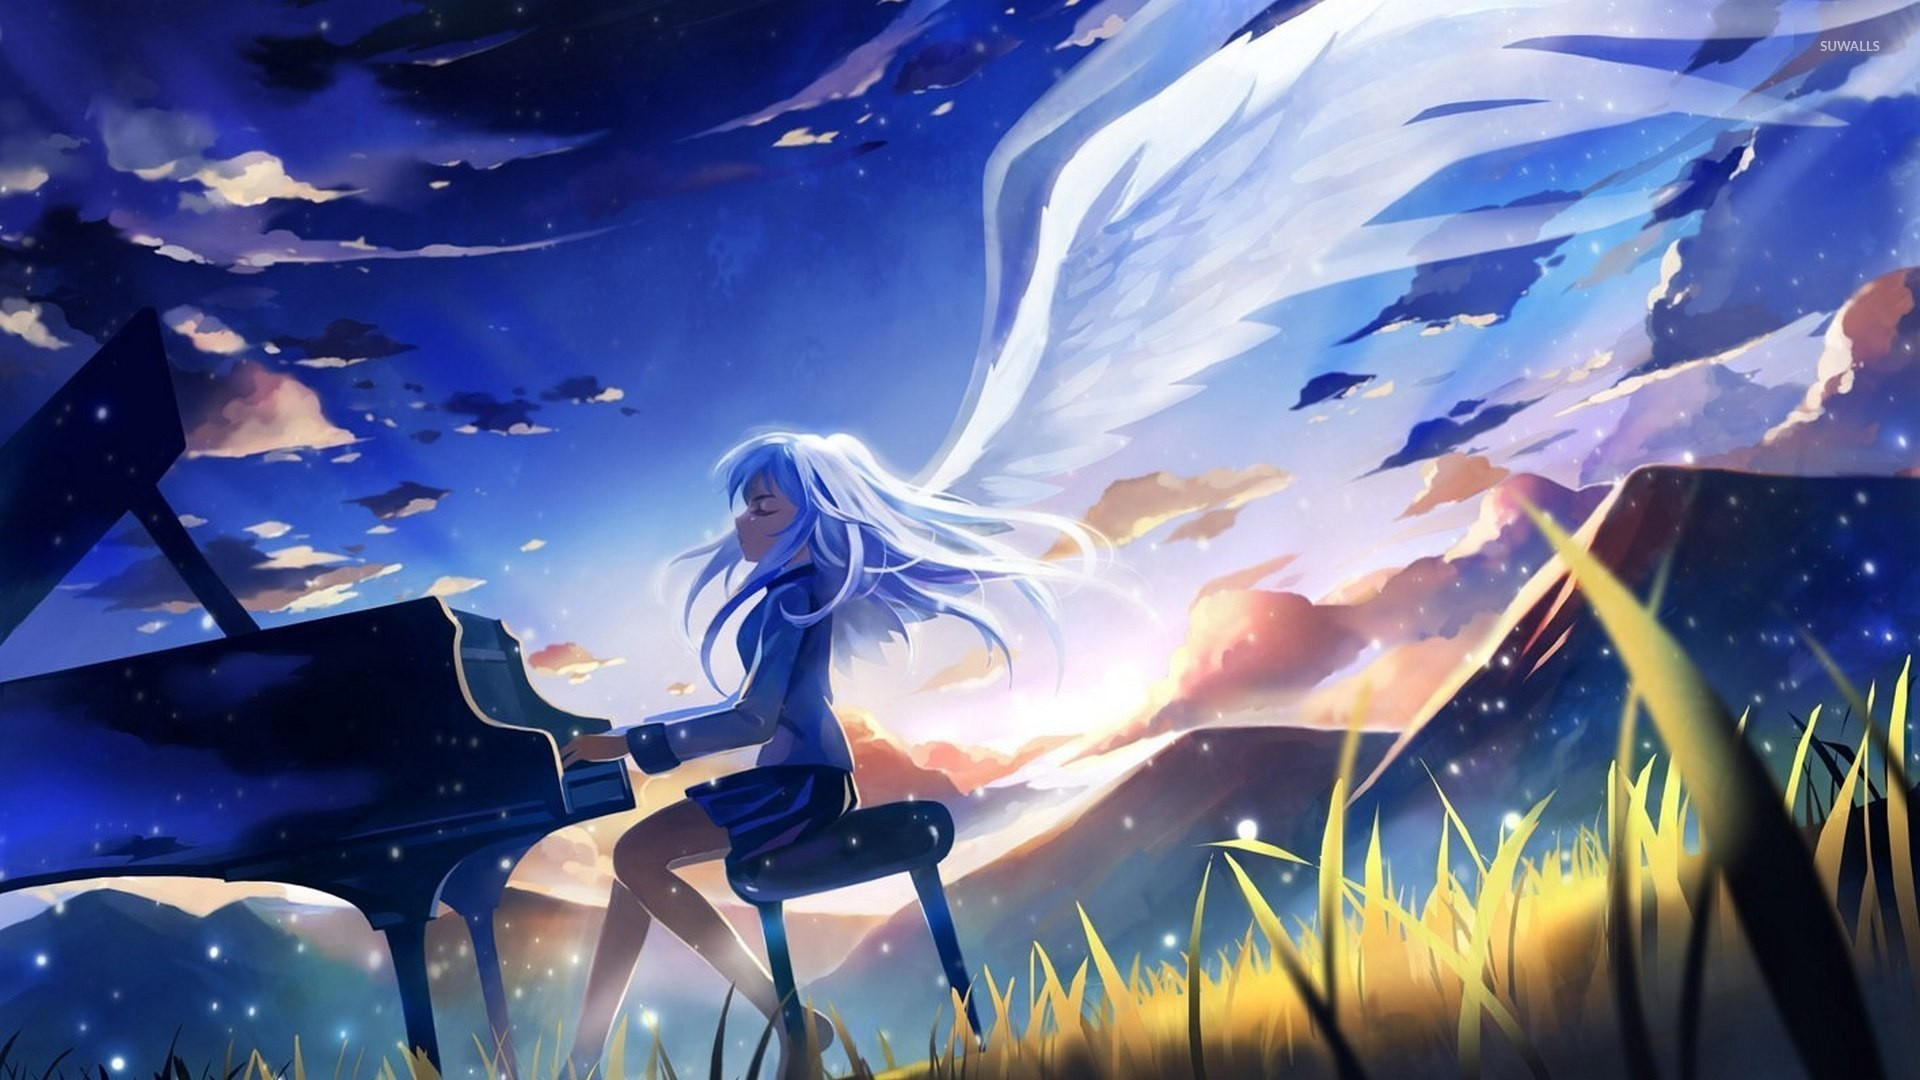 If My Heart Had Wings Wallpaper Anime Wallpapers 41031